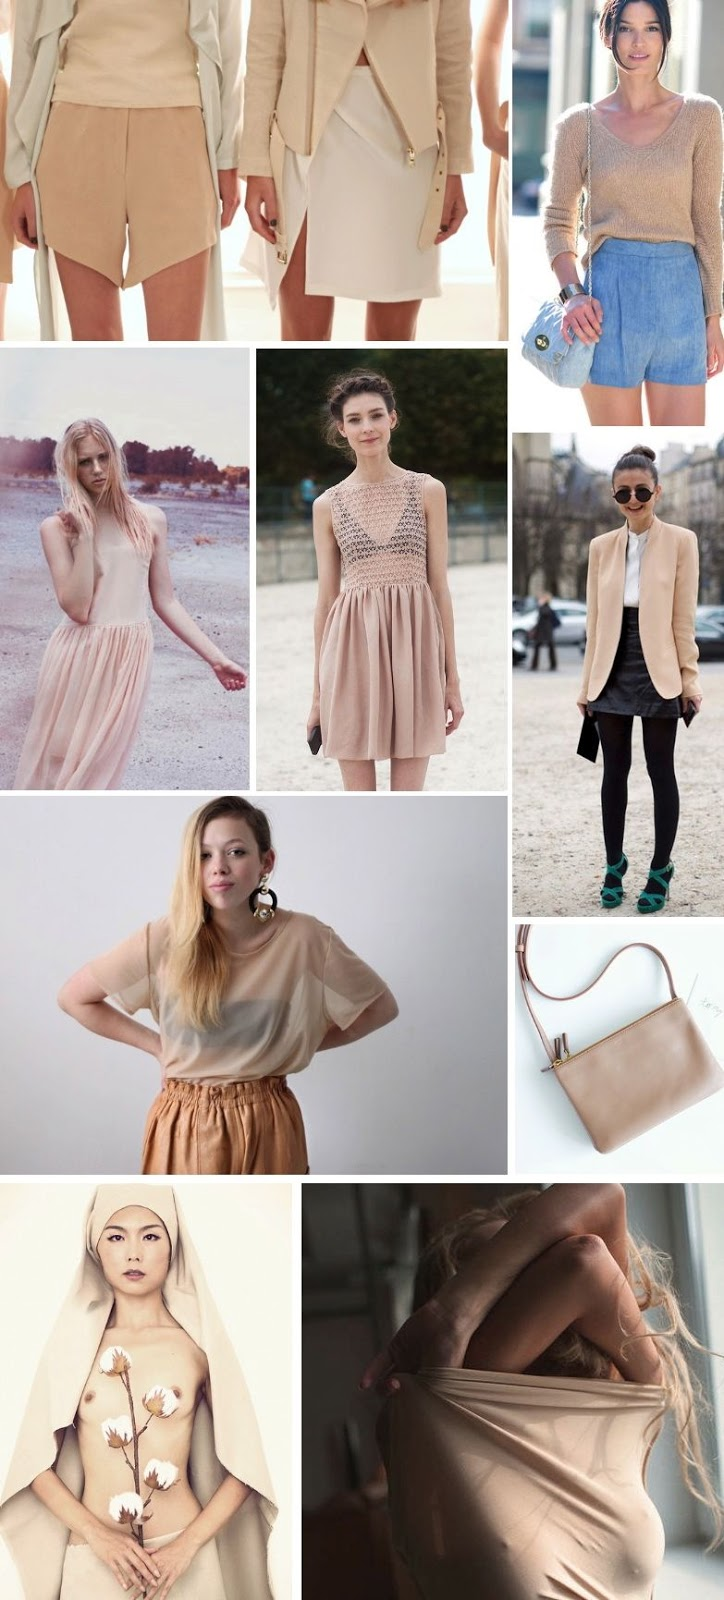 streetstyle and editorials with nude colors